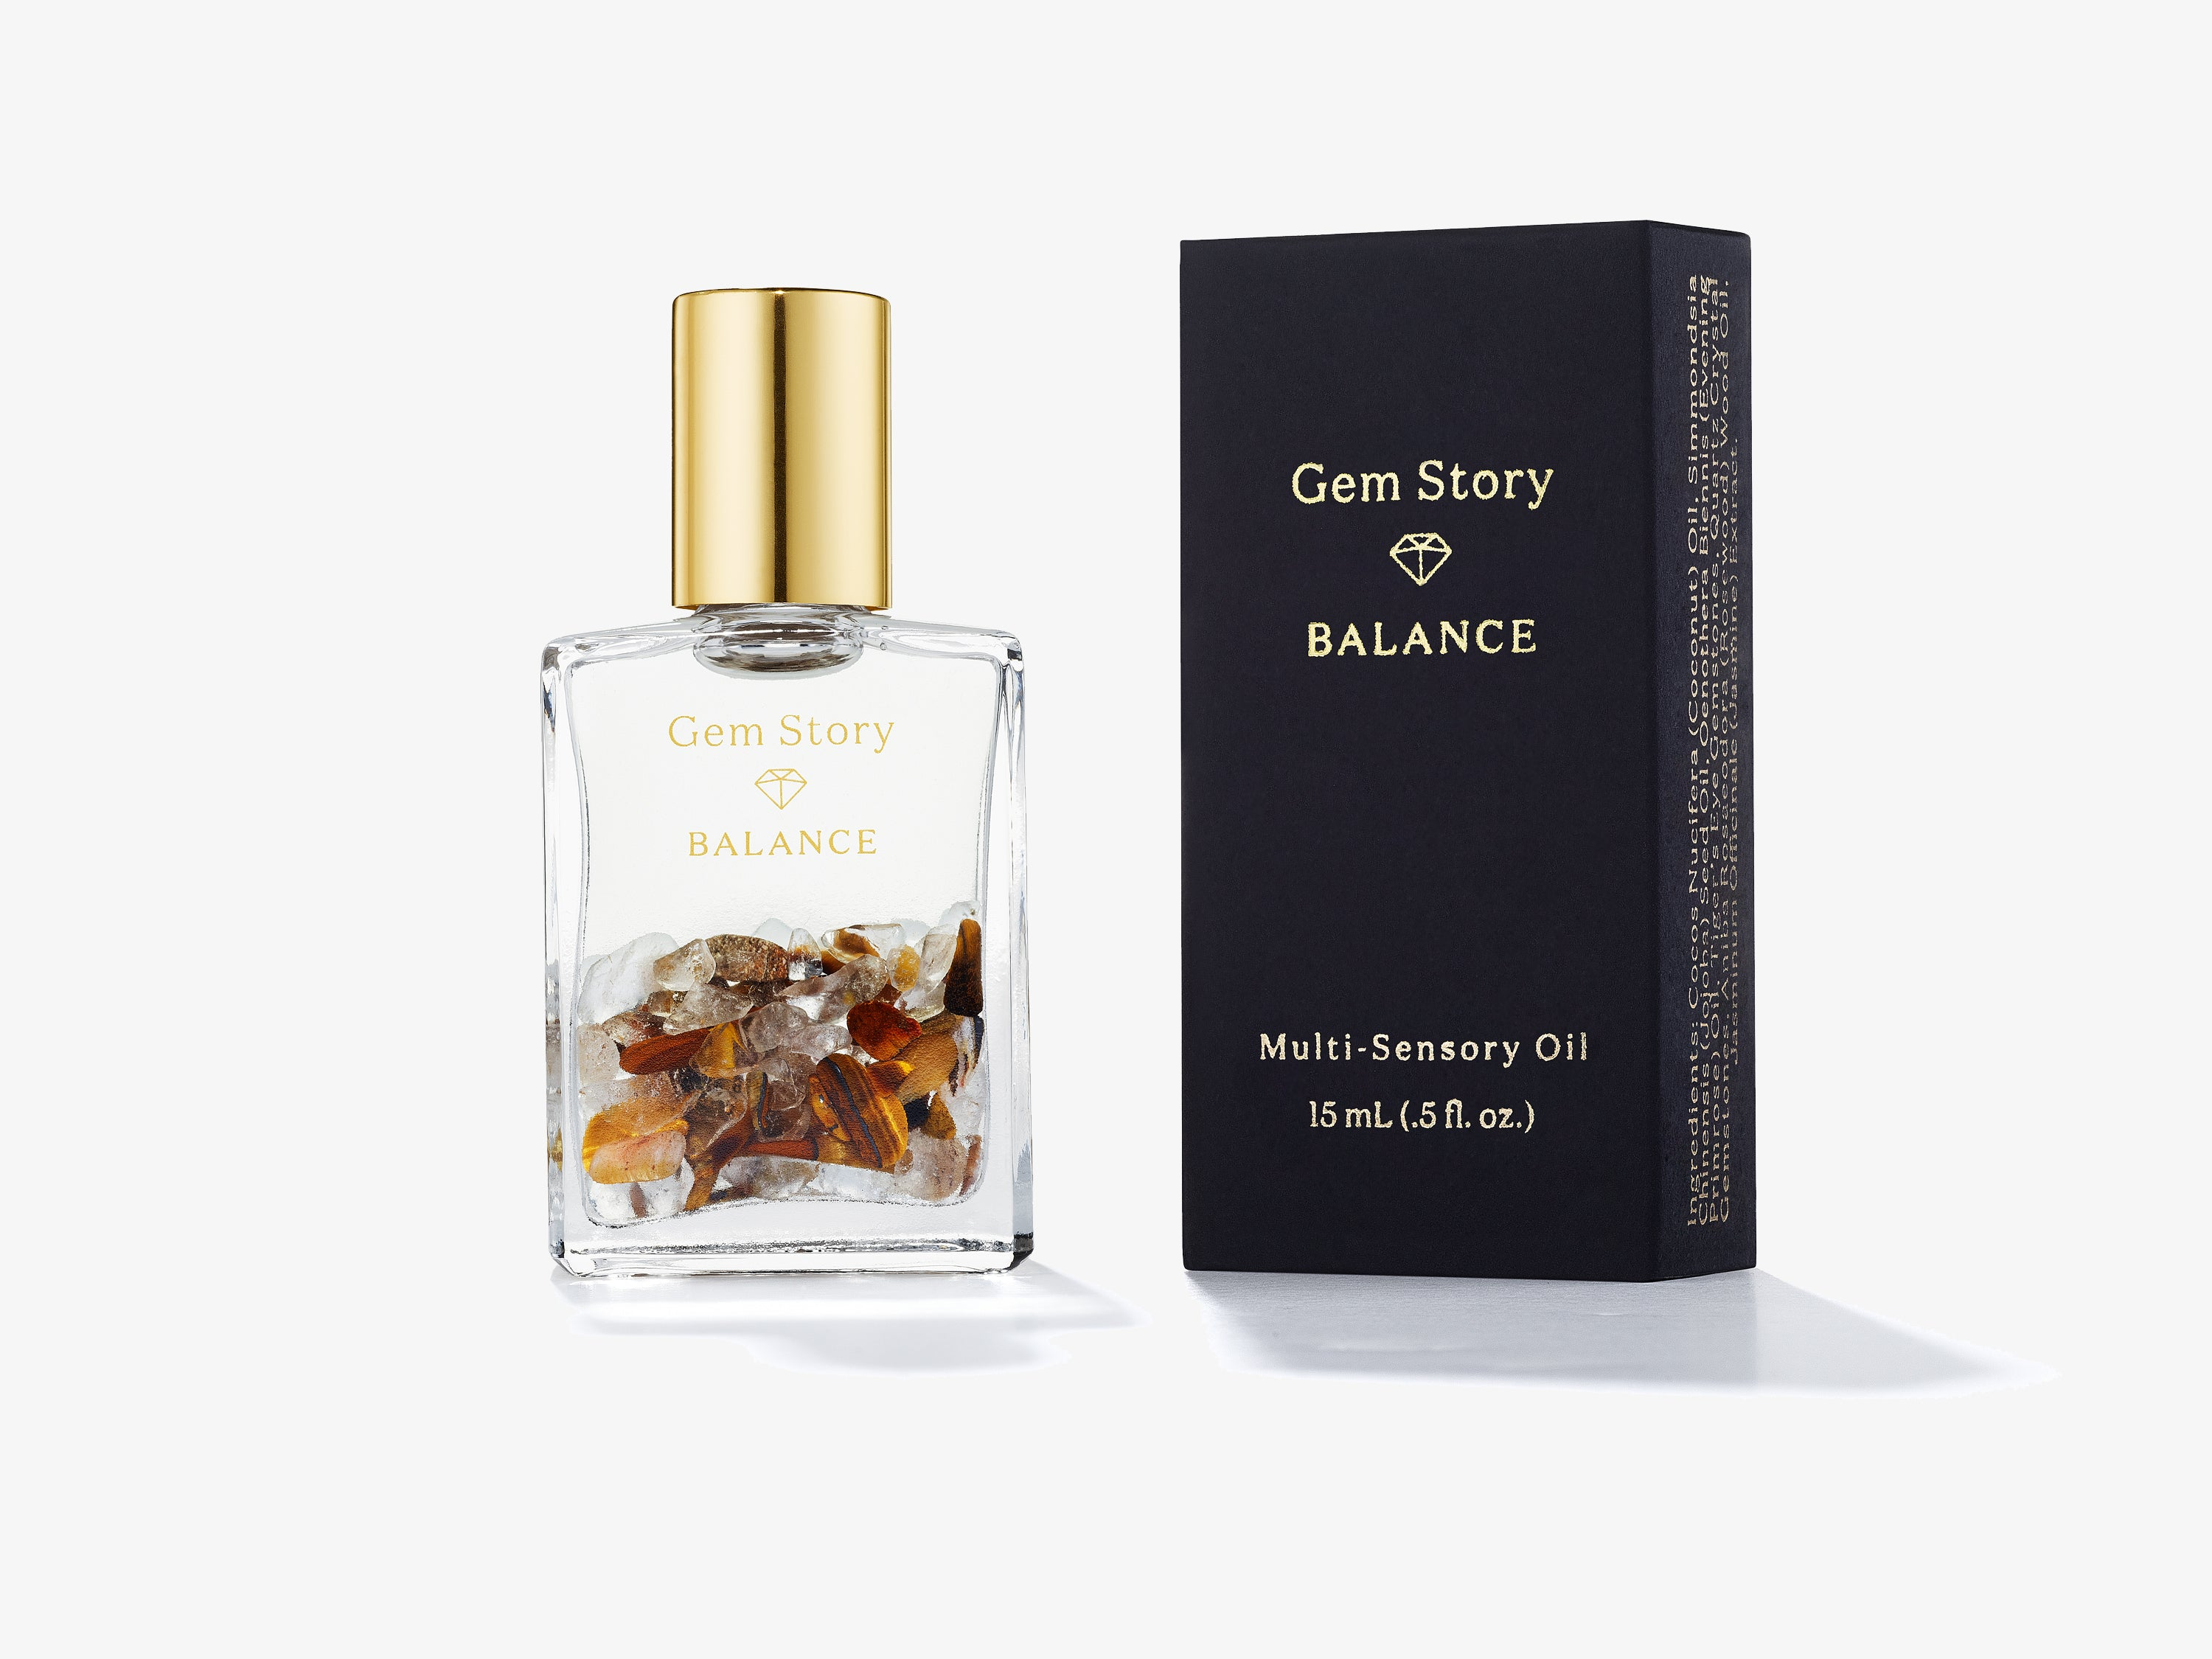 Balance Gem Story Oil (15ml)